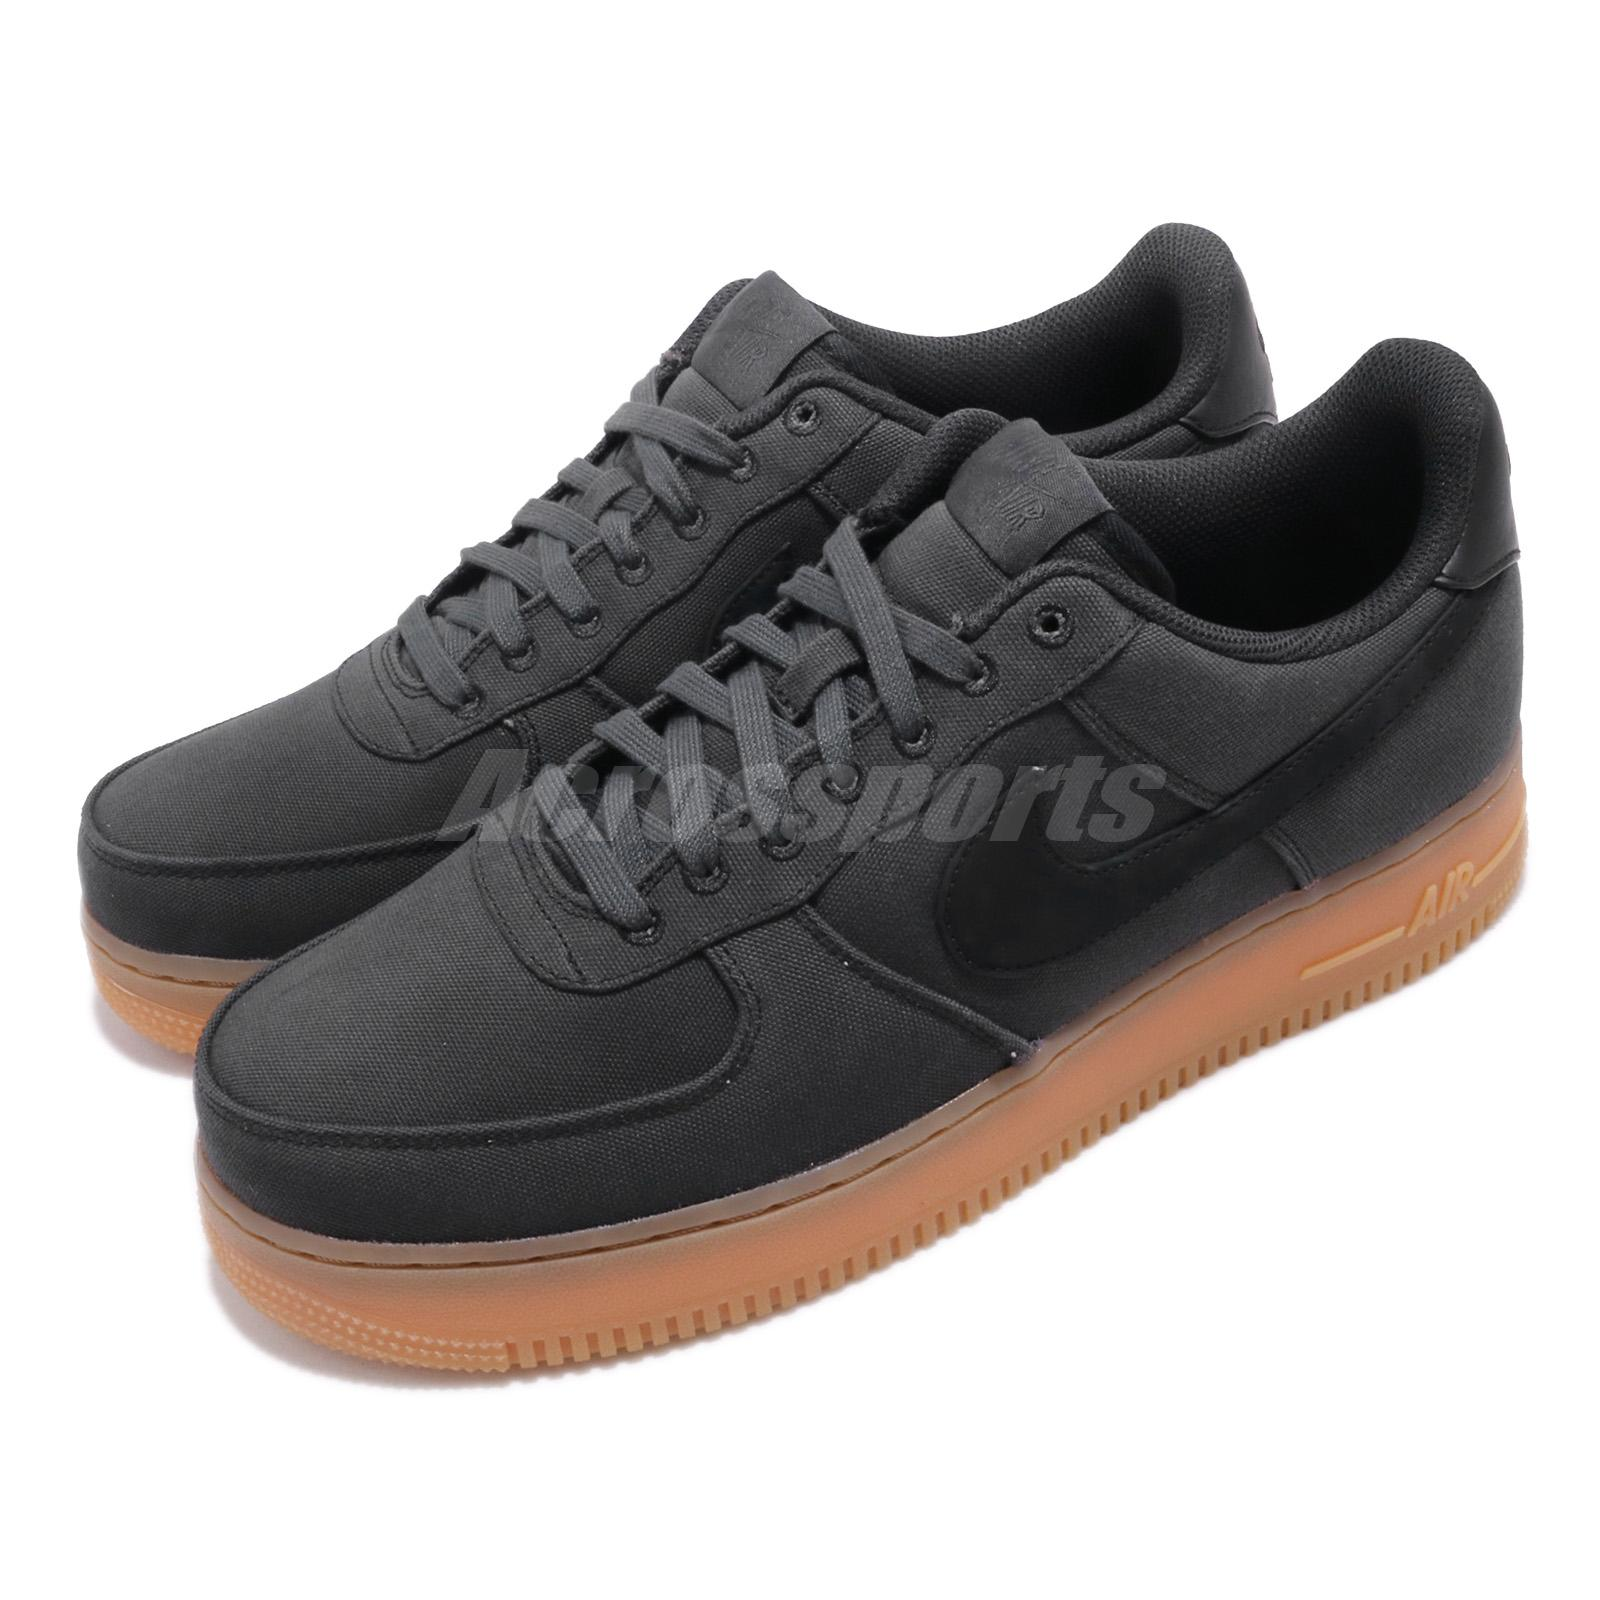 pretty nice 855a0 a4c91 Details about Nike Air Force 1 07 LV8 Style AF1 Black Gum Brown Mens Shoes  Sneakers AQ0117-002